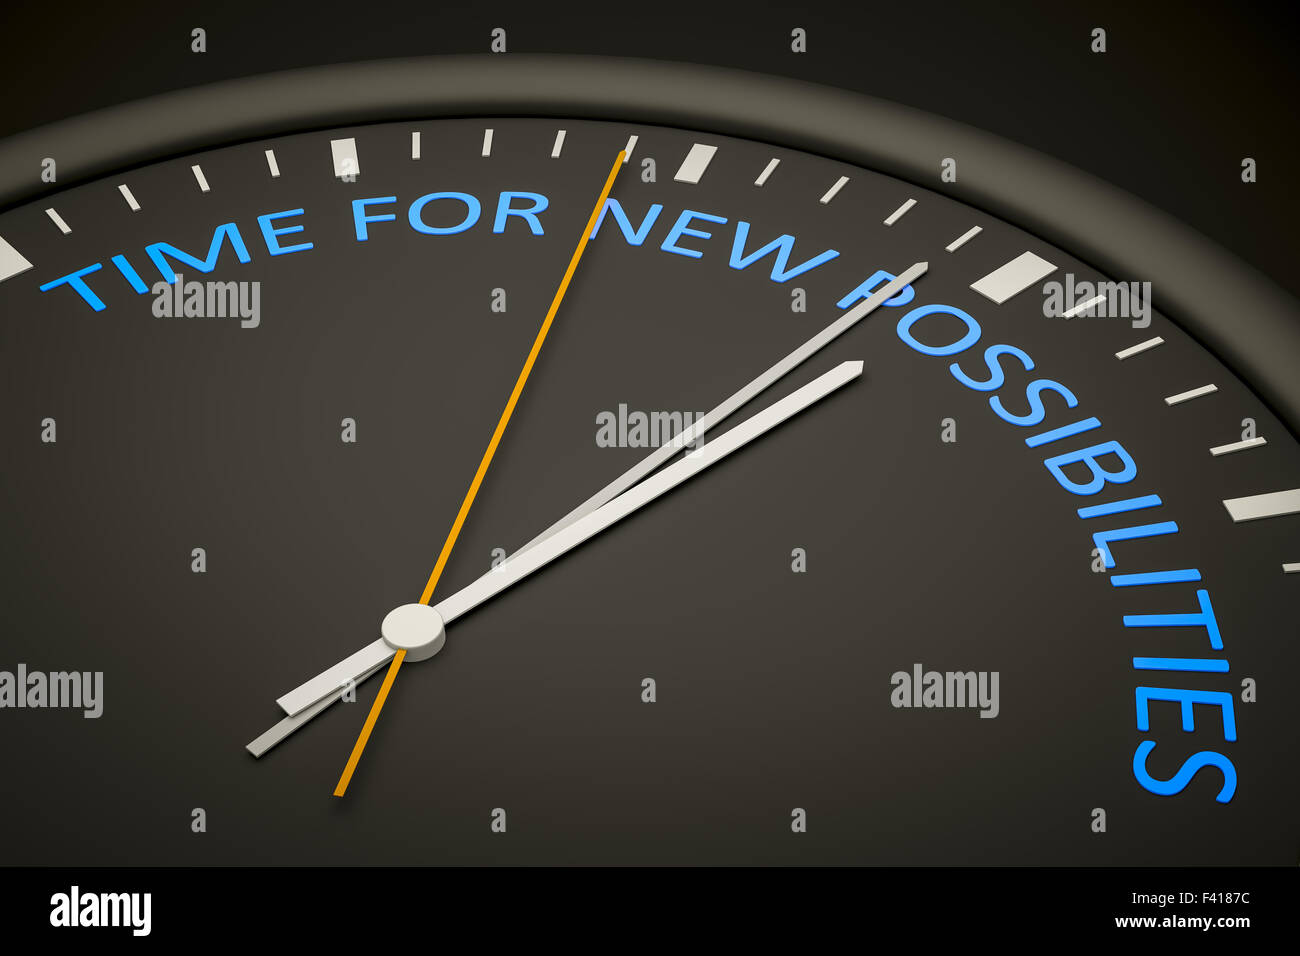 time for new possibilities - Stock Image